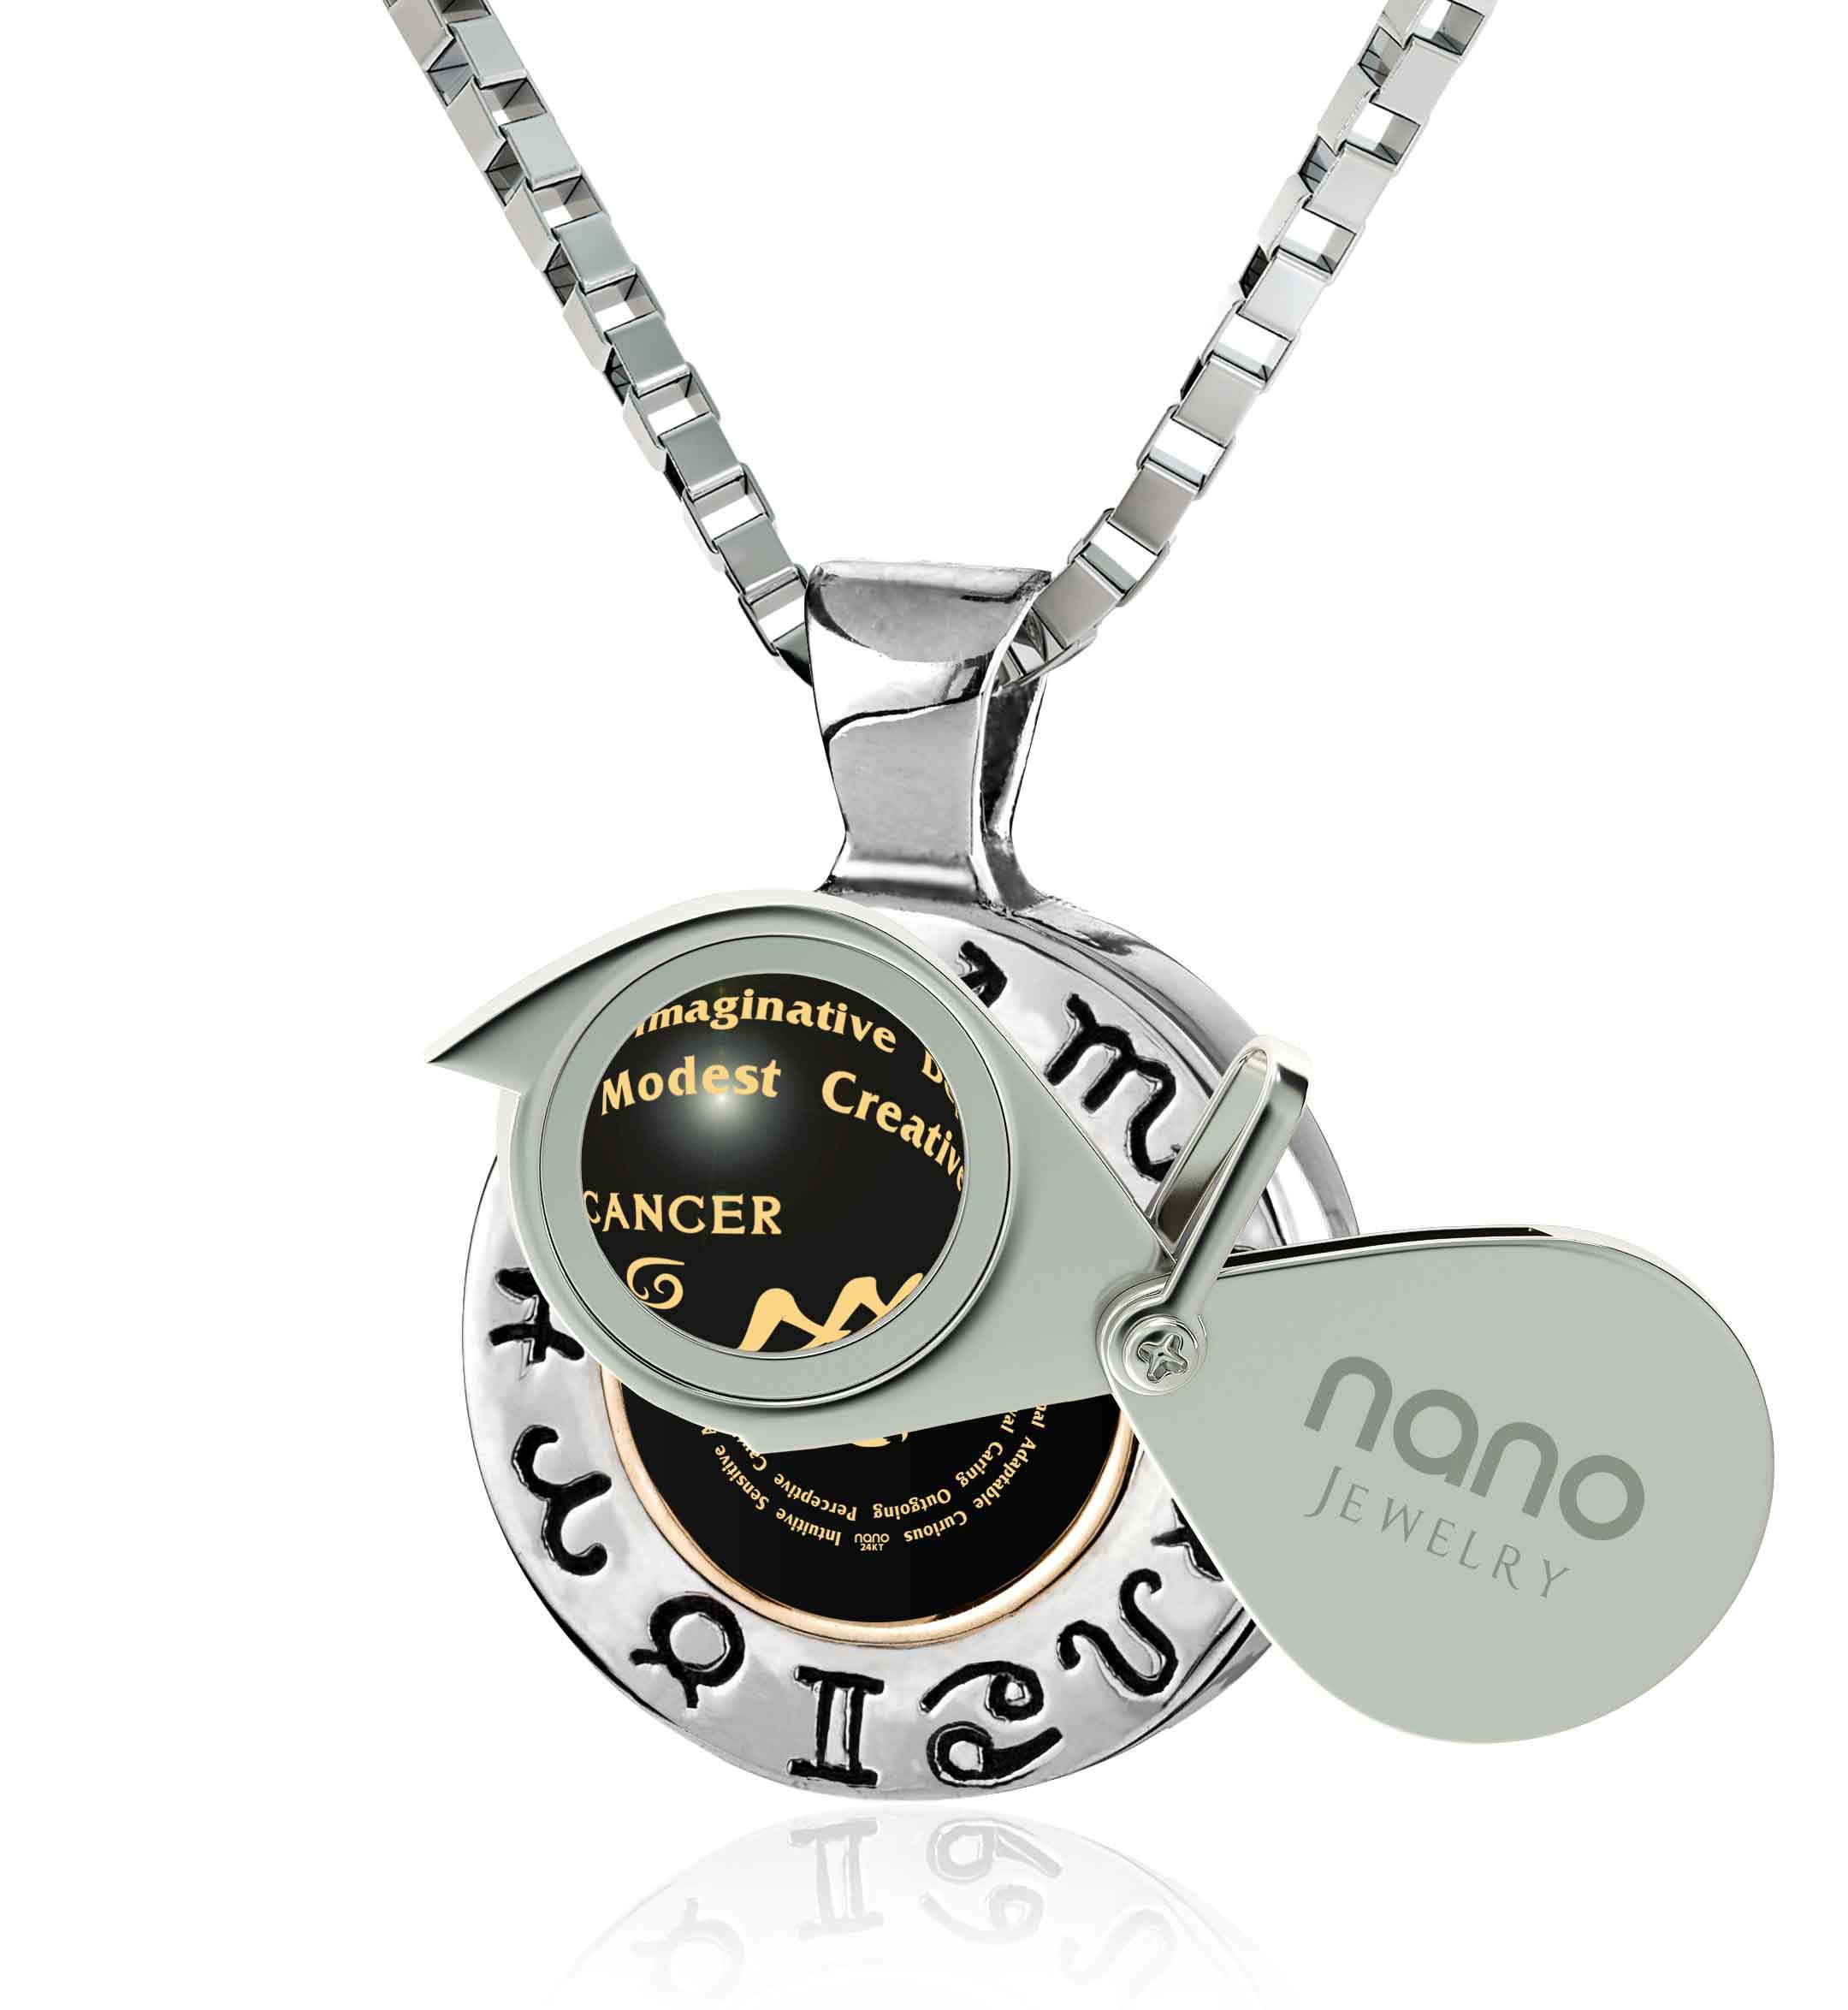 Husband Valentines Gift: Unusual Black Stone Cancer Traits Necklace, Good Presents for Boyfriends